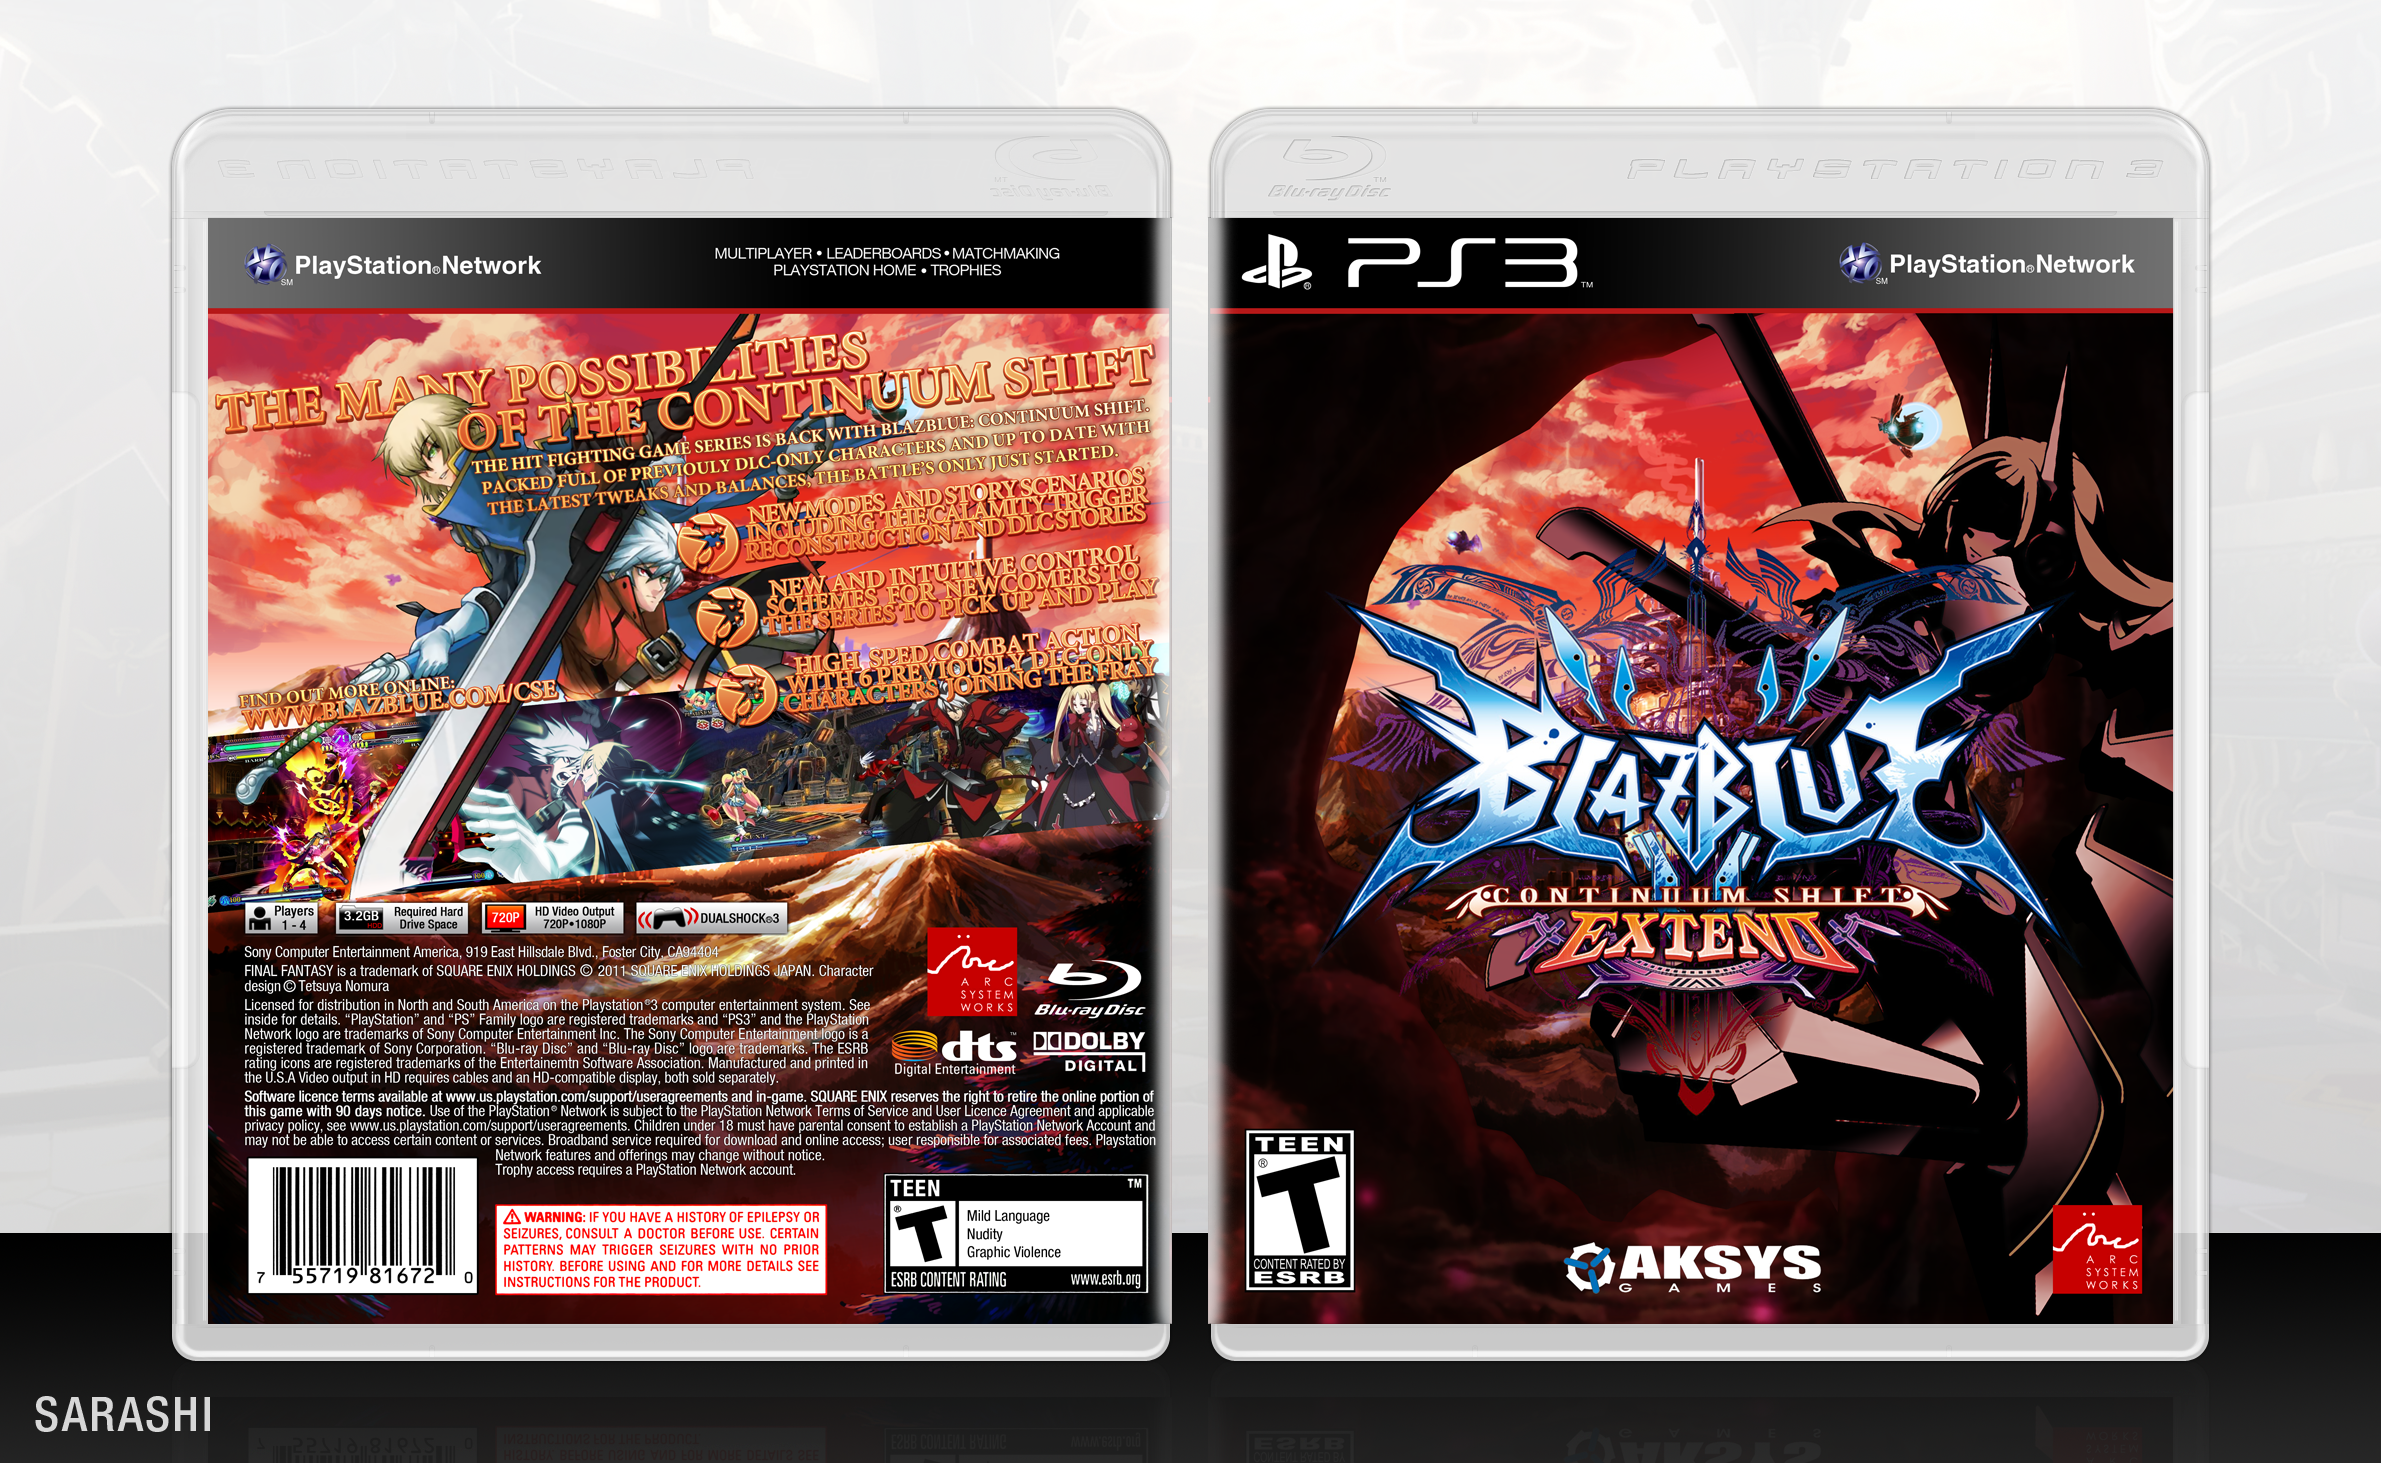 BlazBlue: Continuum Shift Extend box cover